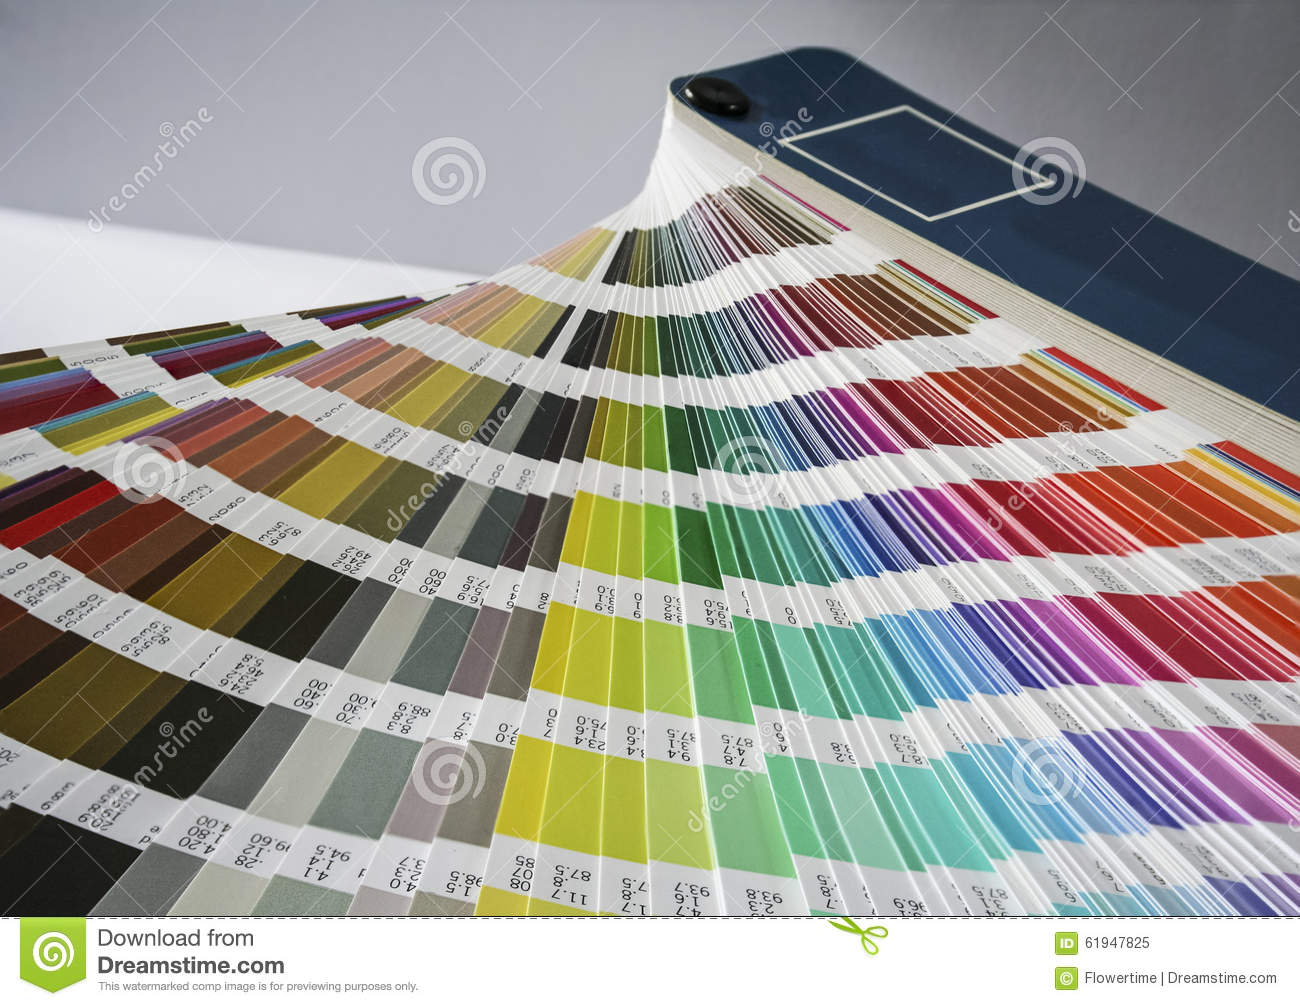 Fan of colour swatches for printing and graphic design.